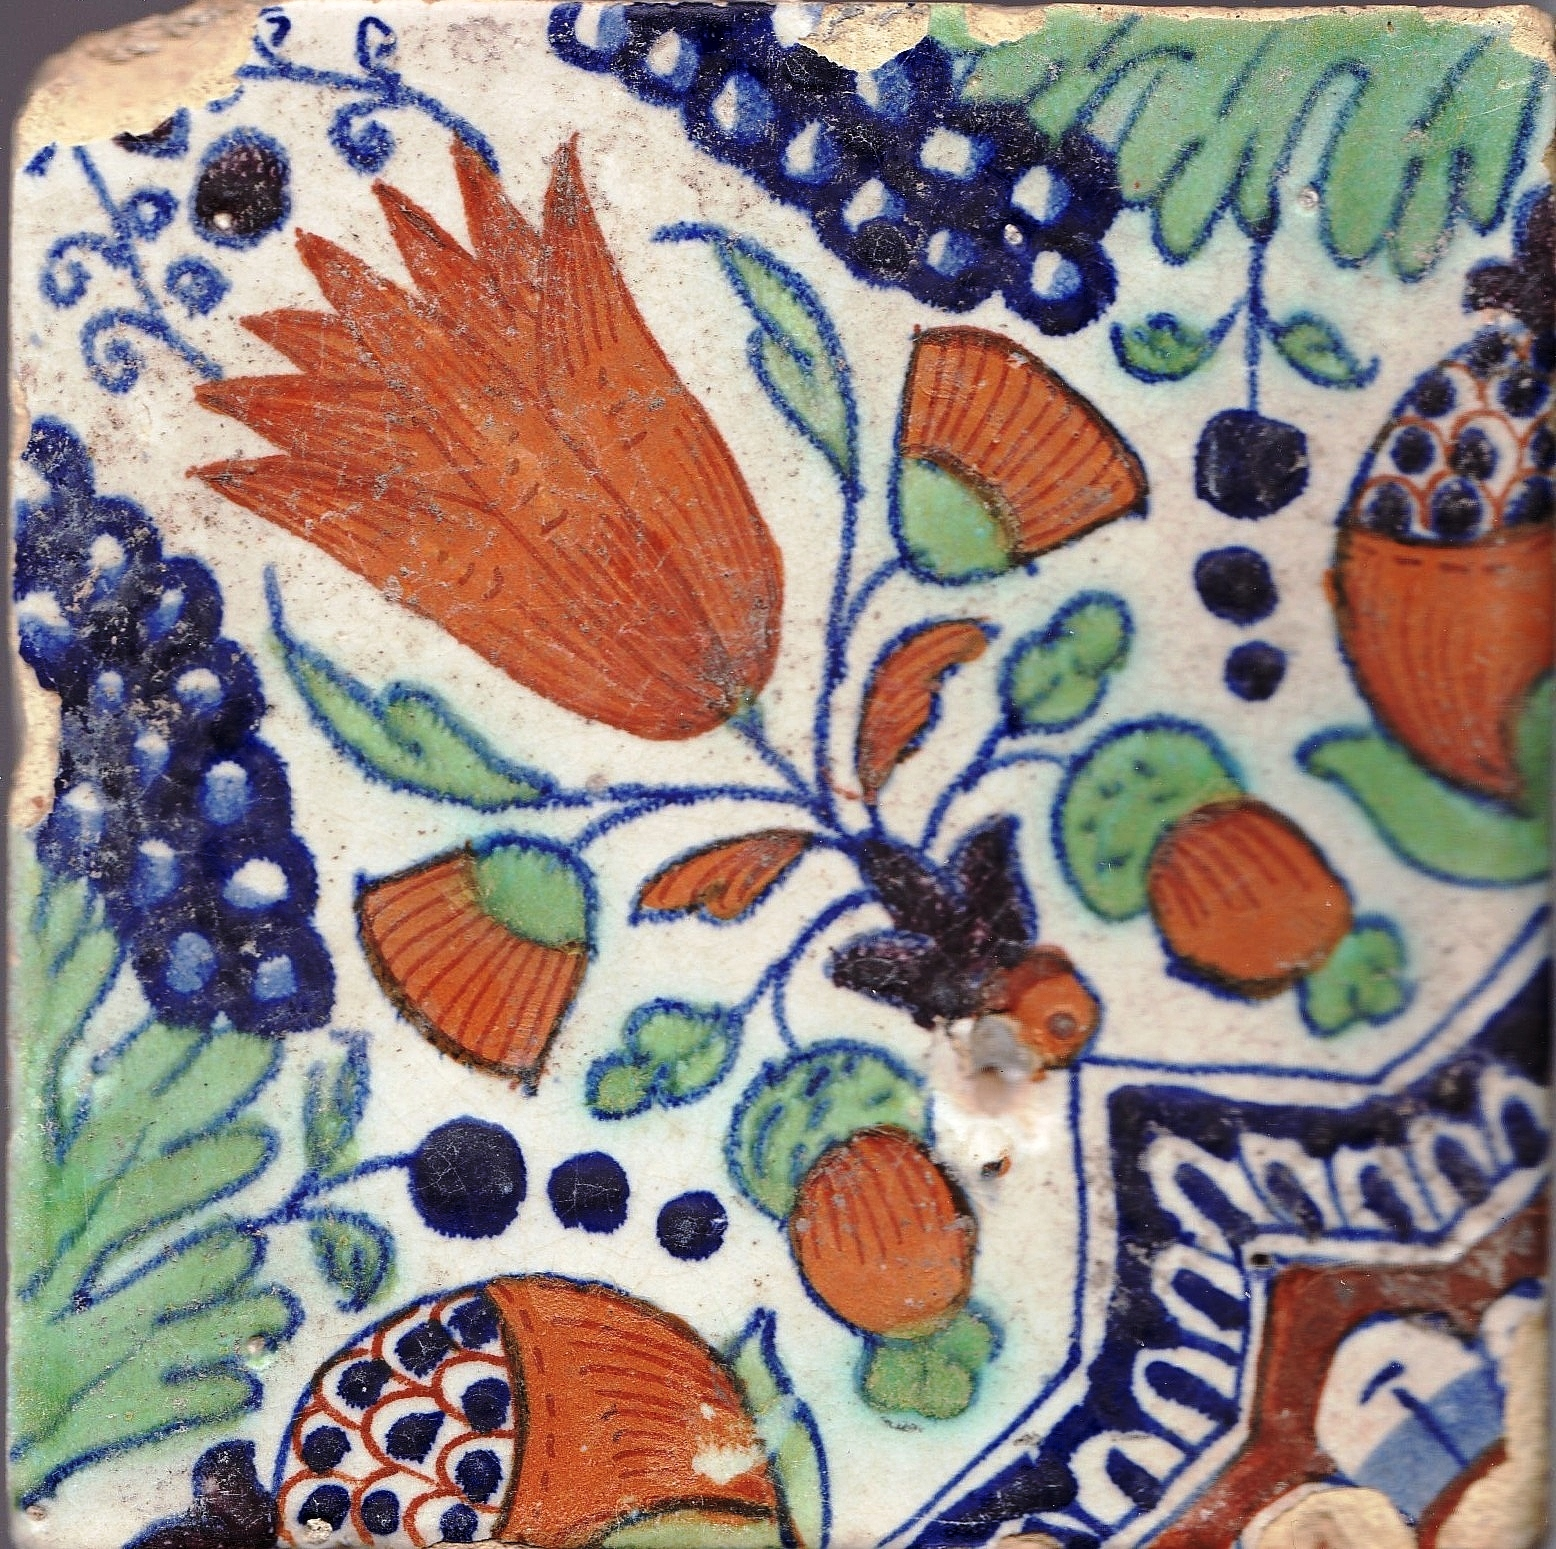 Hans van lemmen historical tiles brief history of tiles dutch delftware tile early 17th century dailygadgetfo Image collections